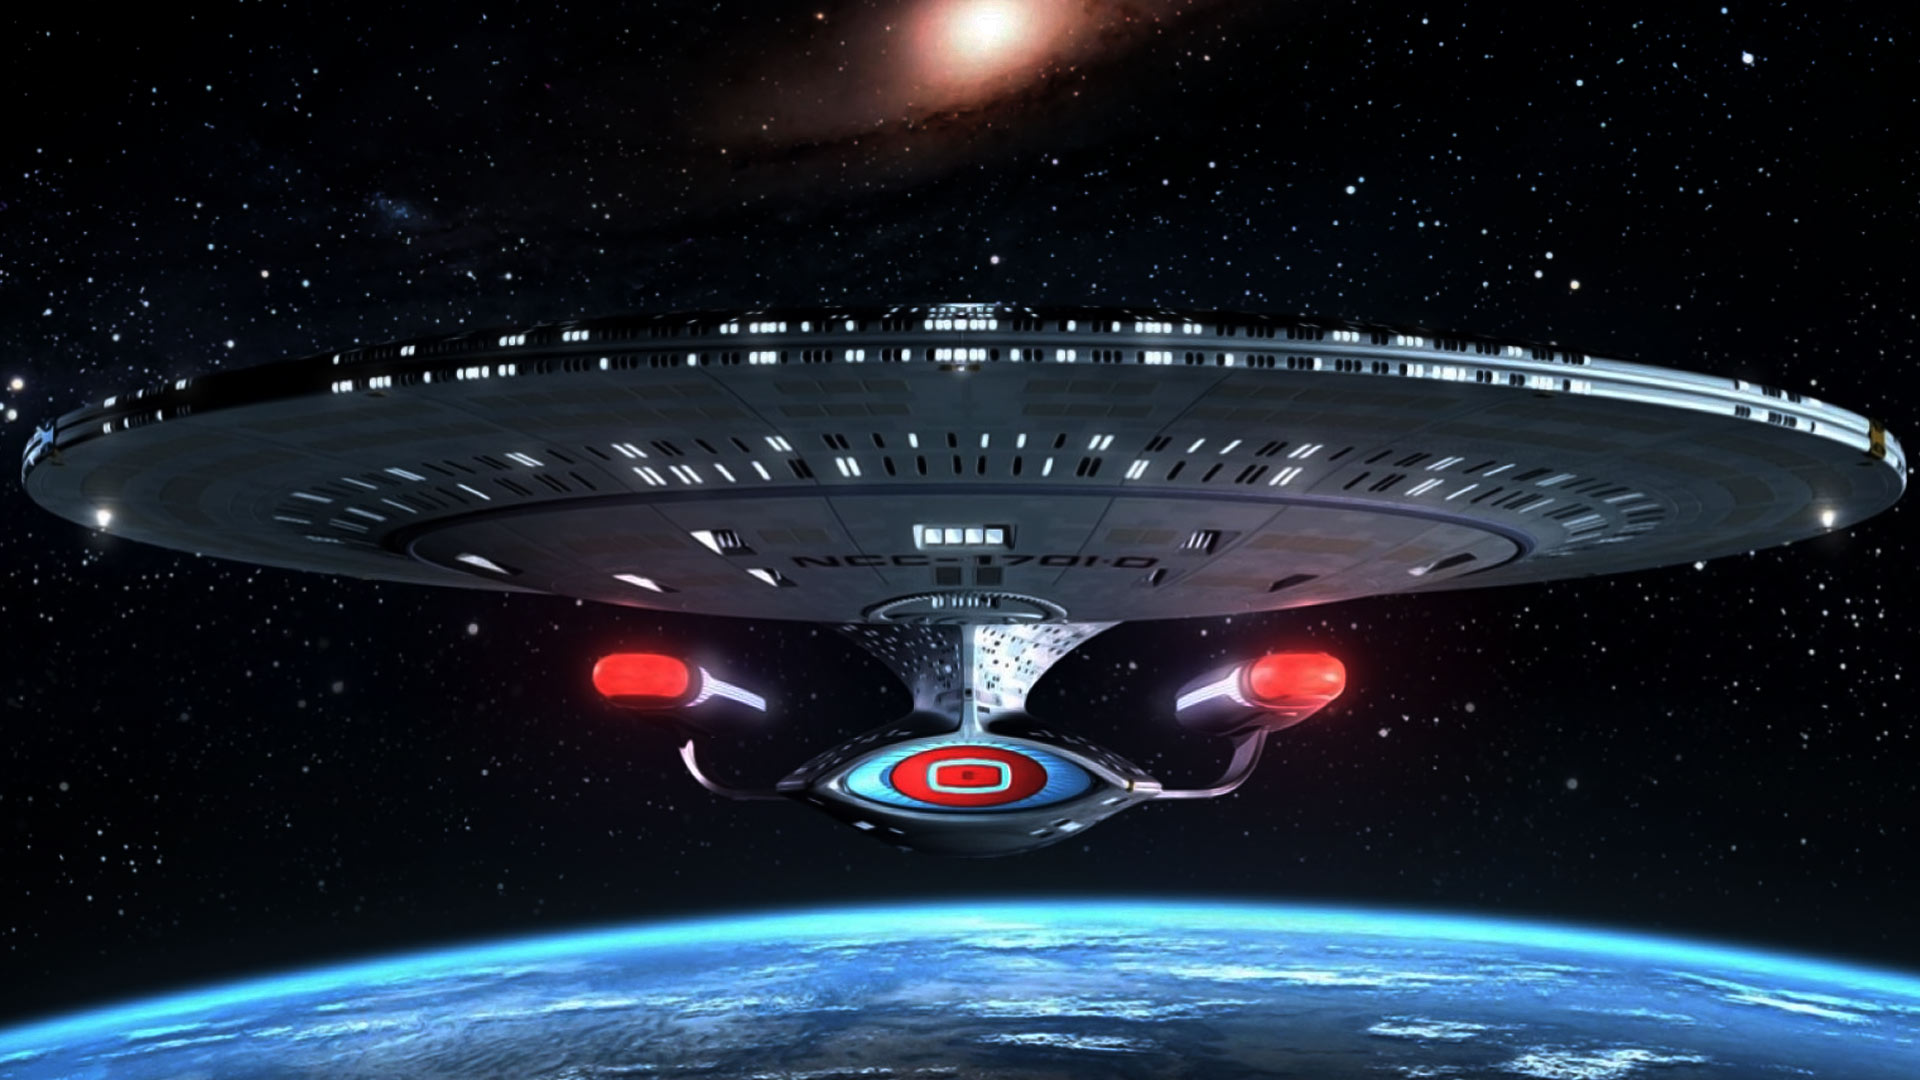 Sci fi star trek wallpaper hd 1920x1080 for Sci fi background